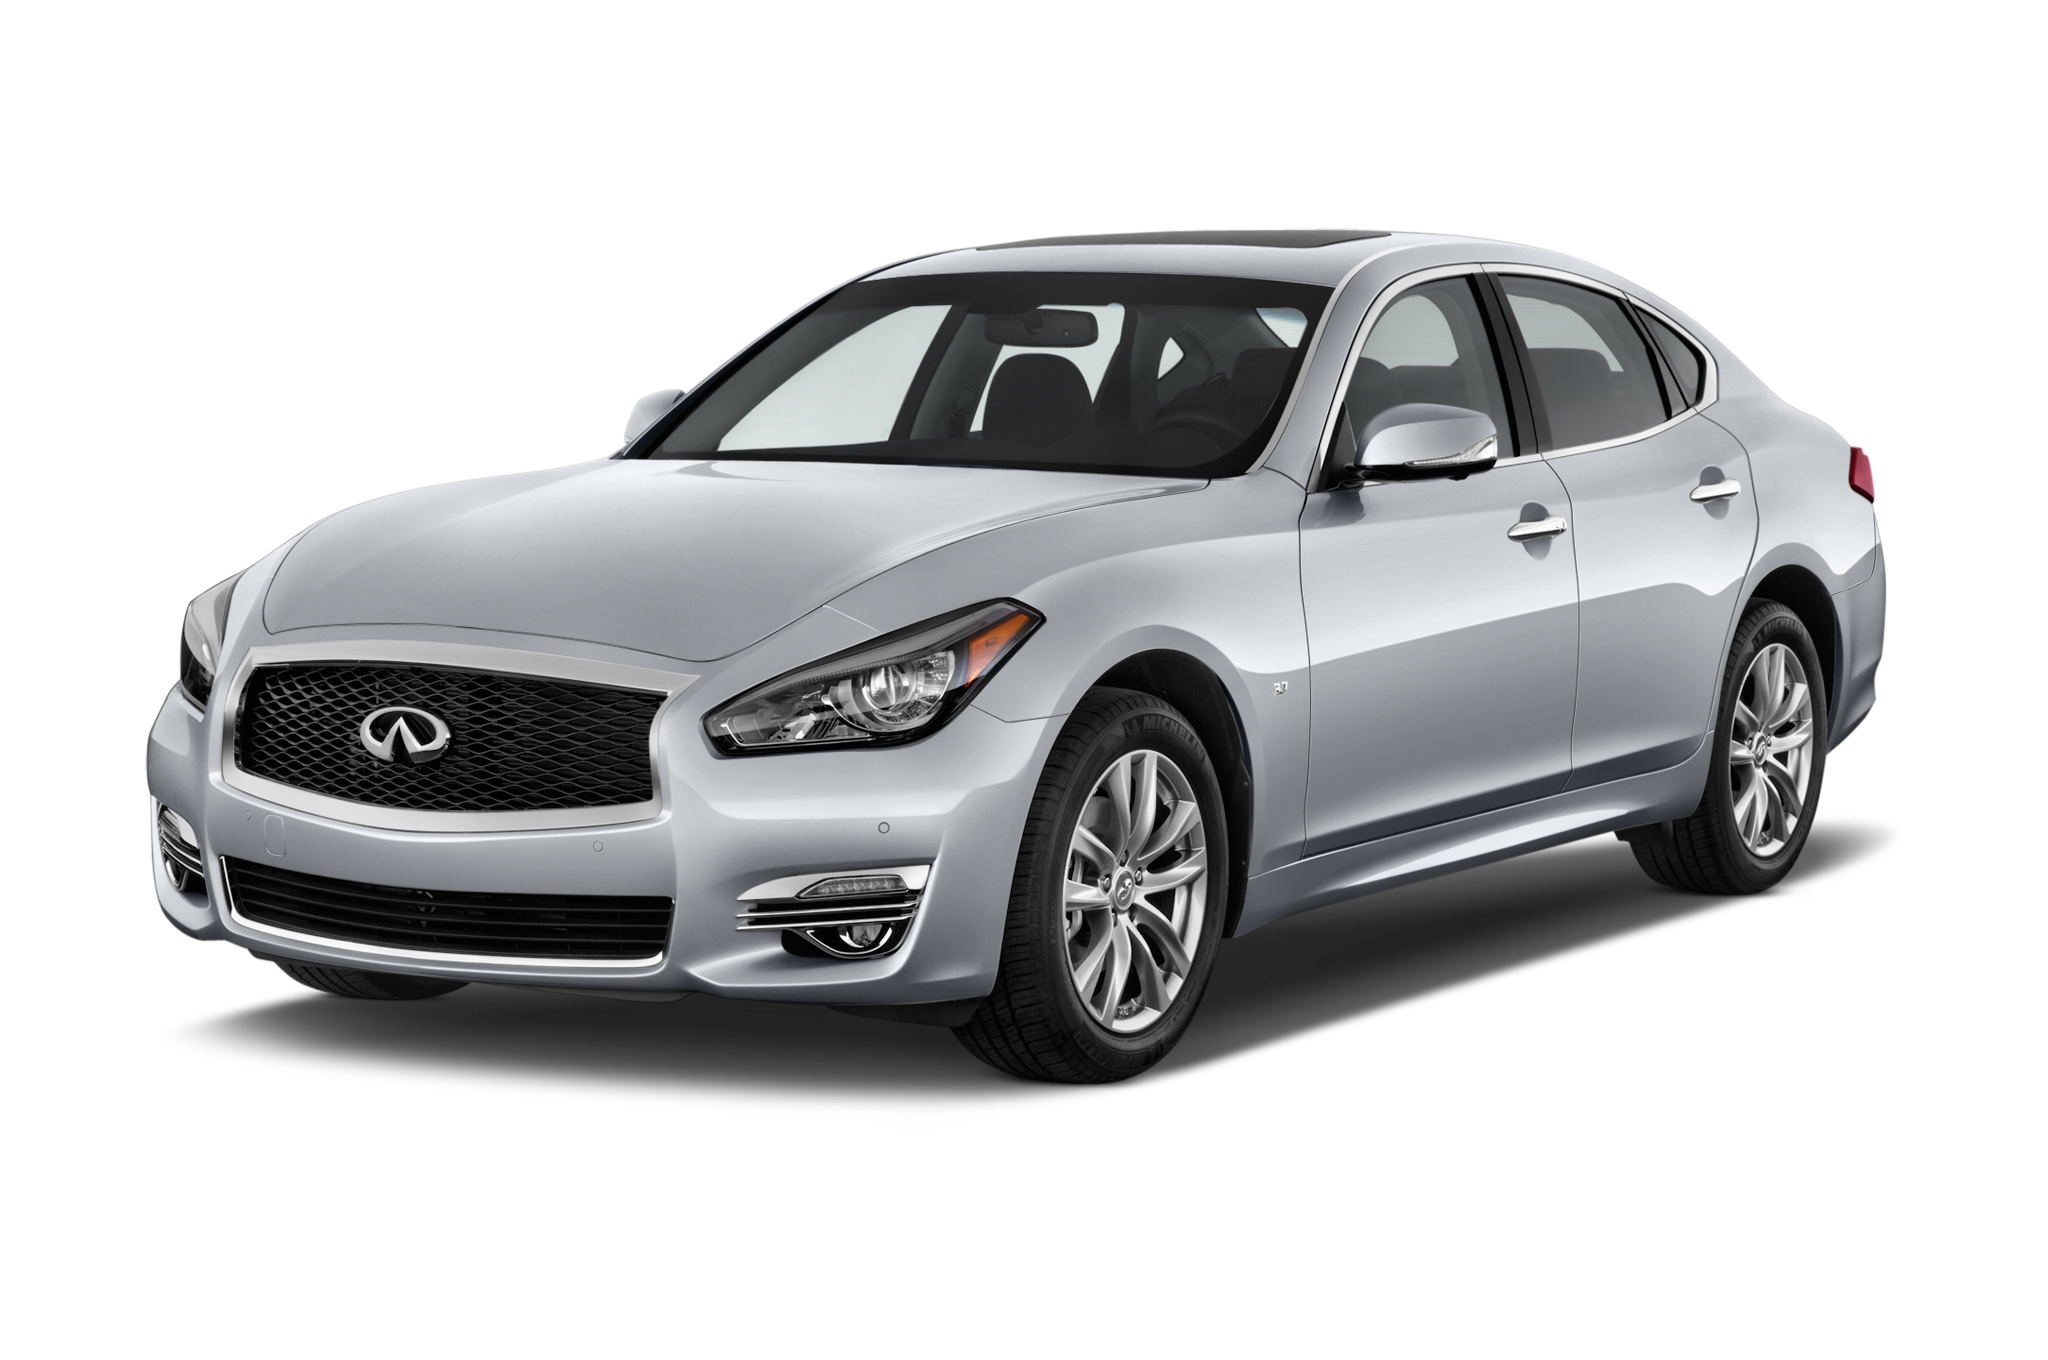 2015 Infiniti Q70 Reviews and Rating | Motor Trend